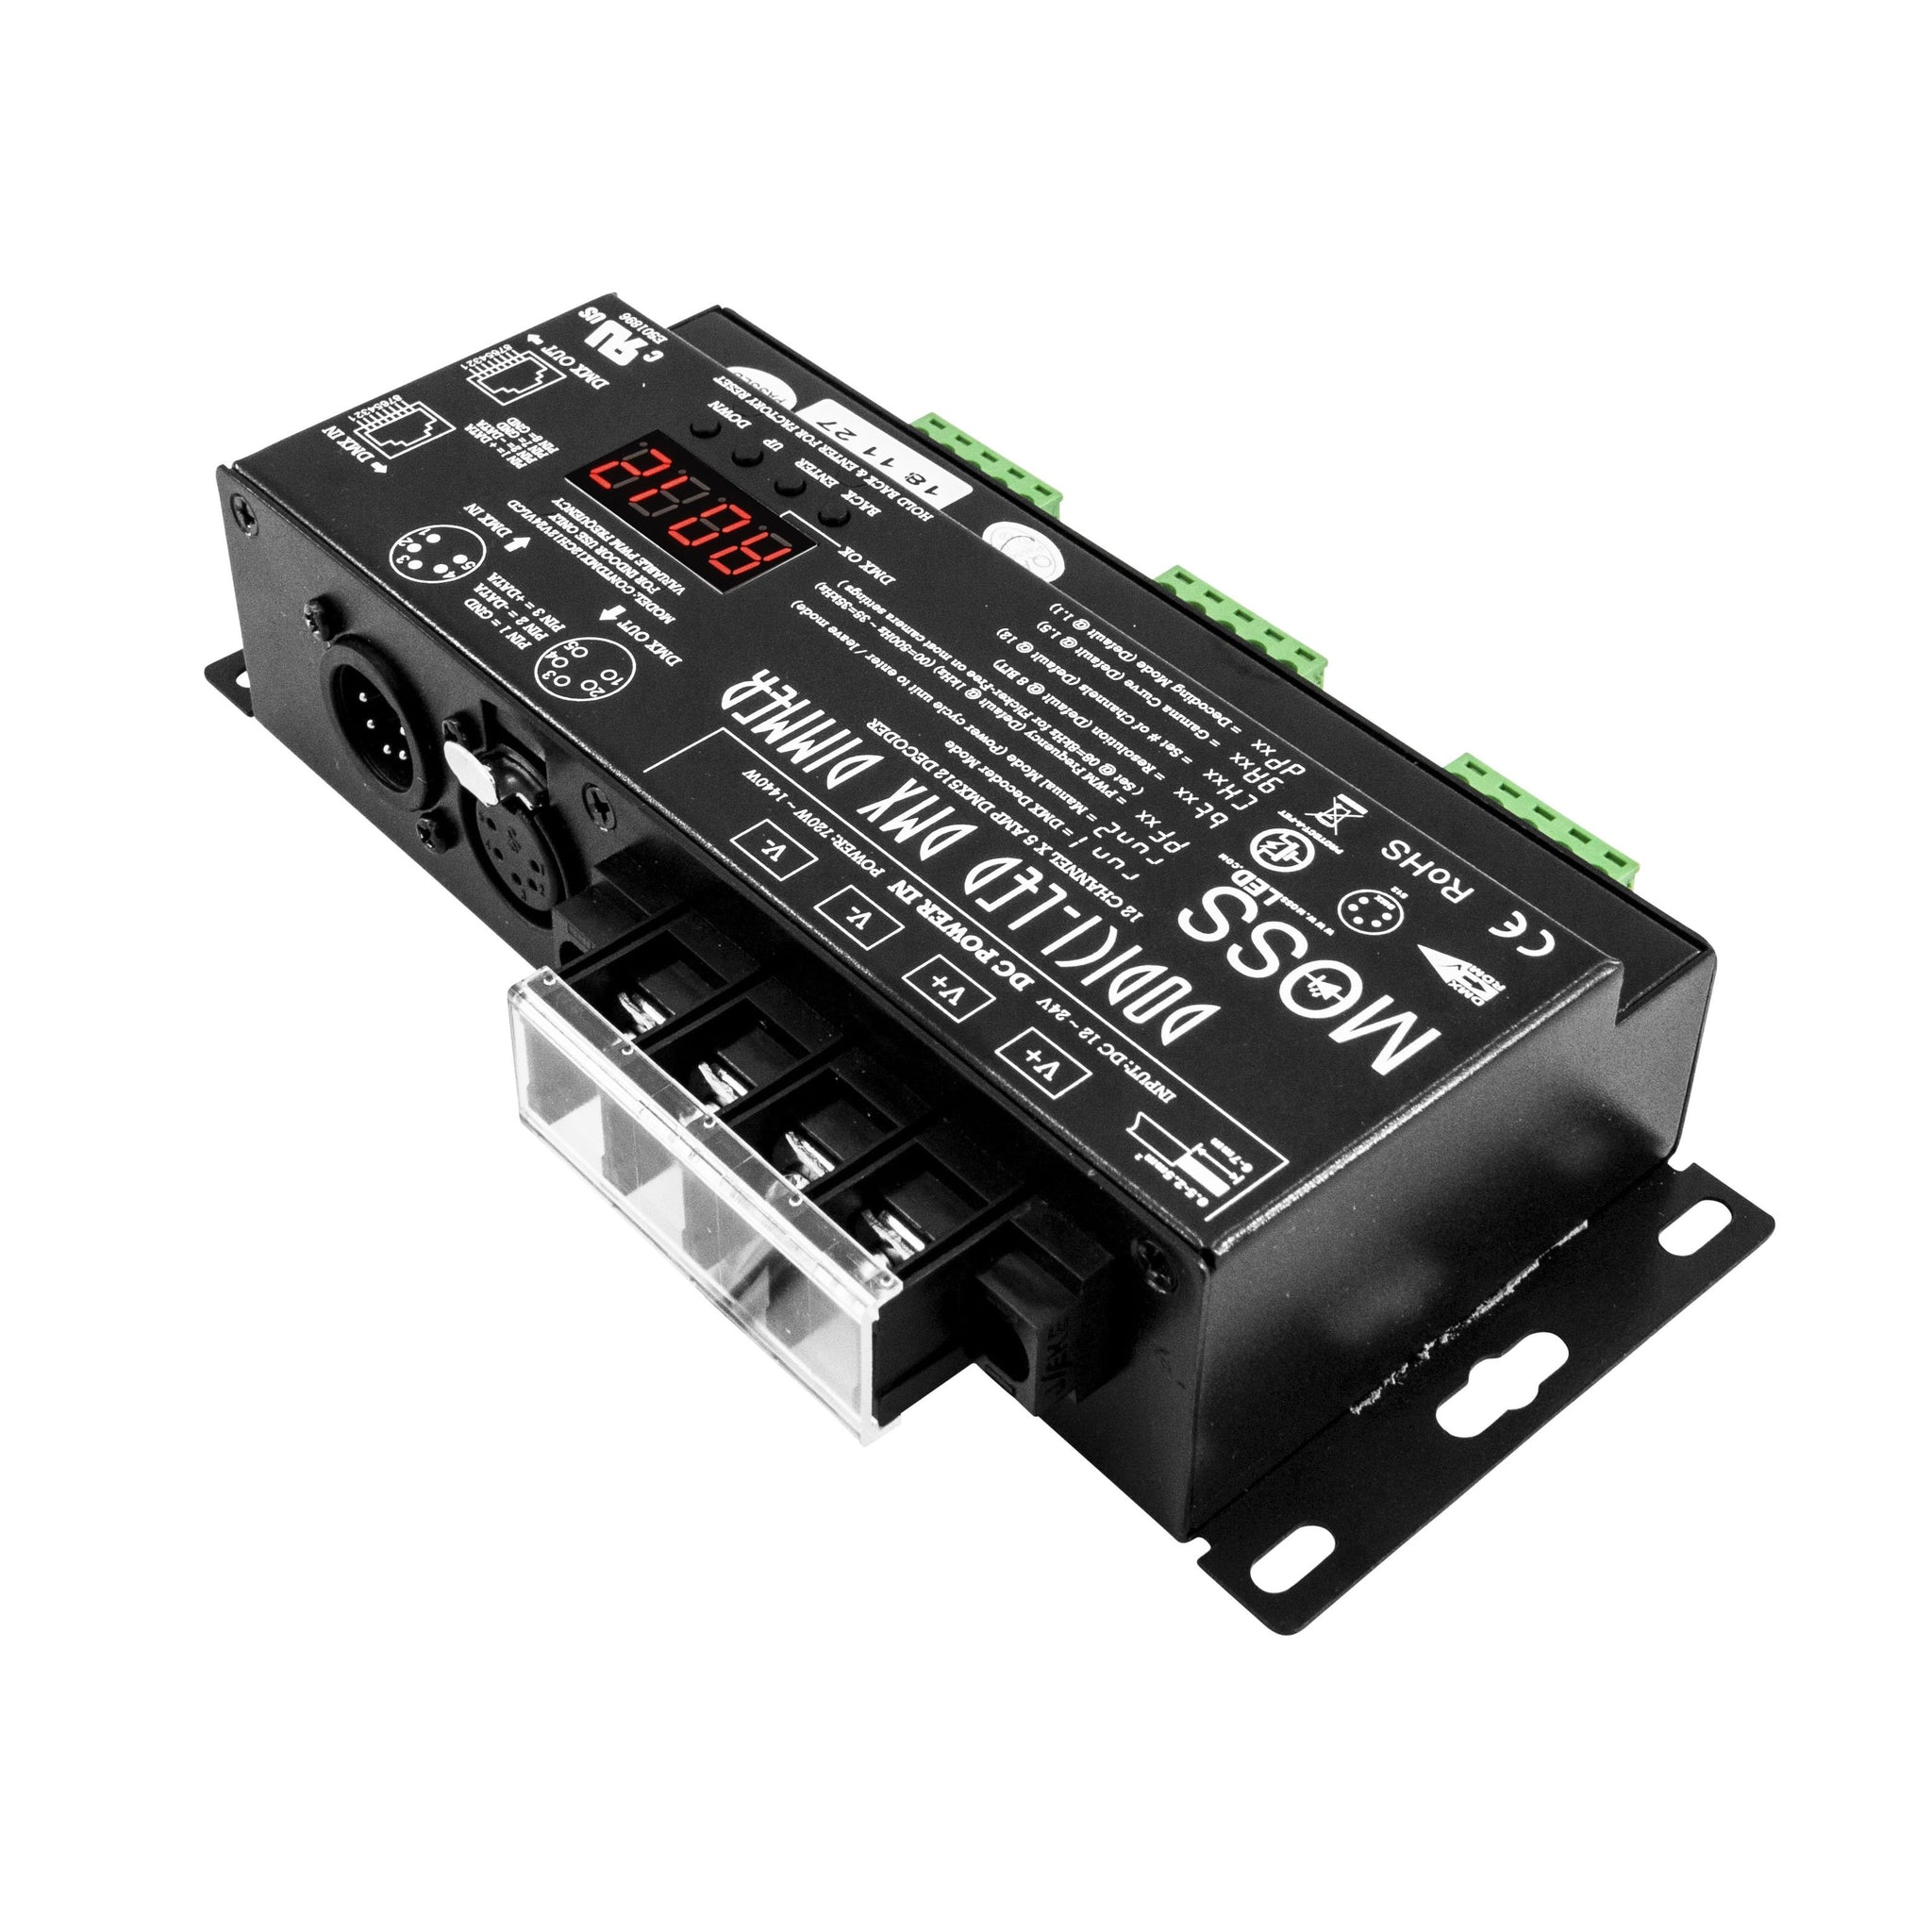 High Cri Flexible Led Lighting And Flicker Free Dimming Dmx Control Flickerledcircuitboardwebpng Dodici 12 Channel Dimmer